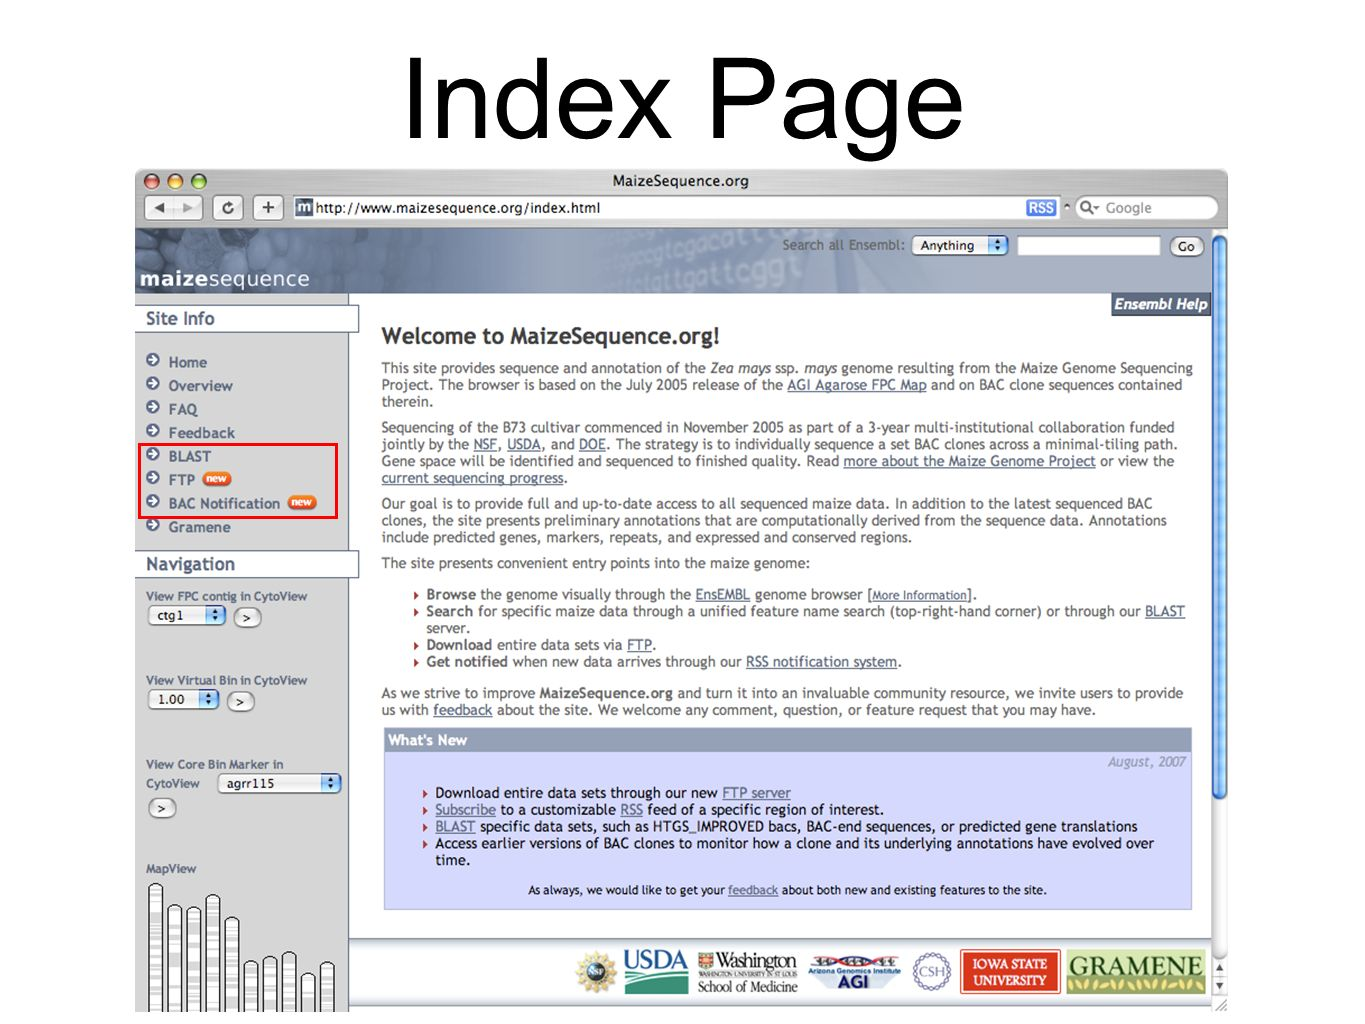 Maizesequence.org RSS BAC Notification Users can be notified of sequence and annotation updates to a particular region of interest on the FPC map via a RSS (Really Simple Syndication) notification system.